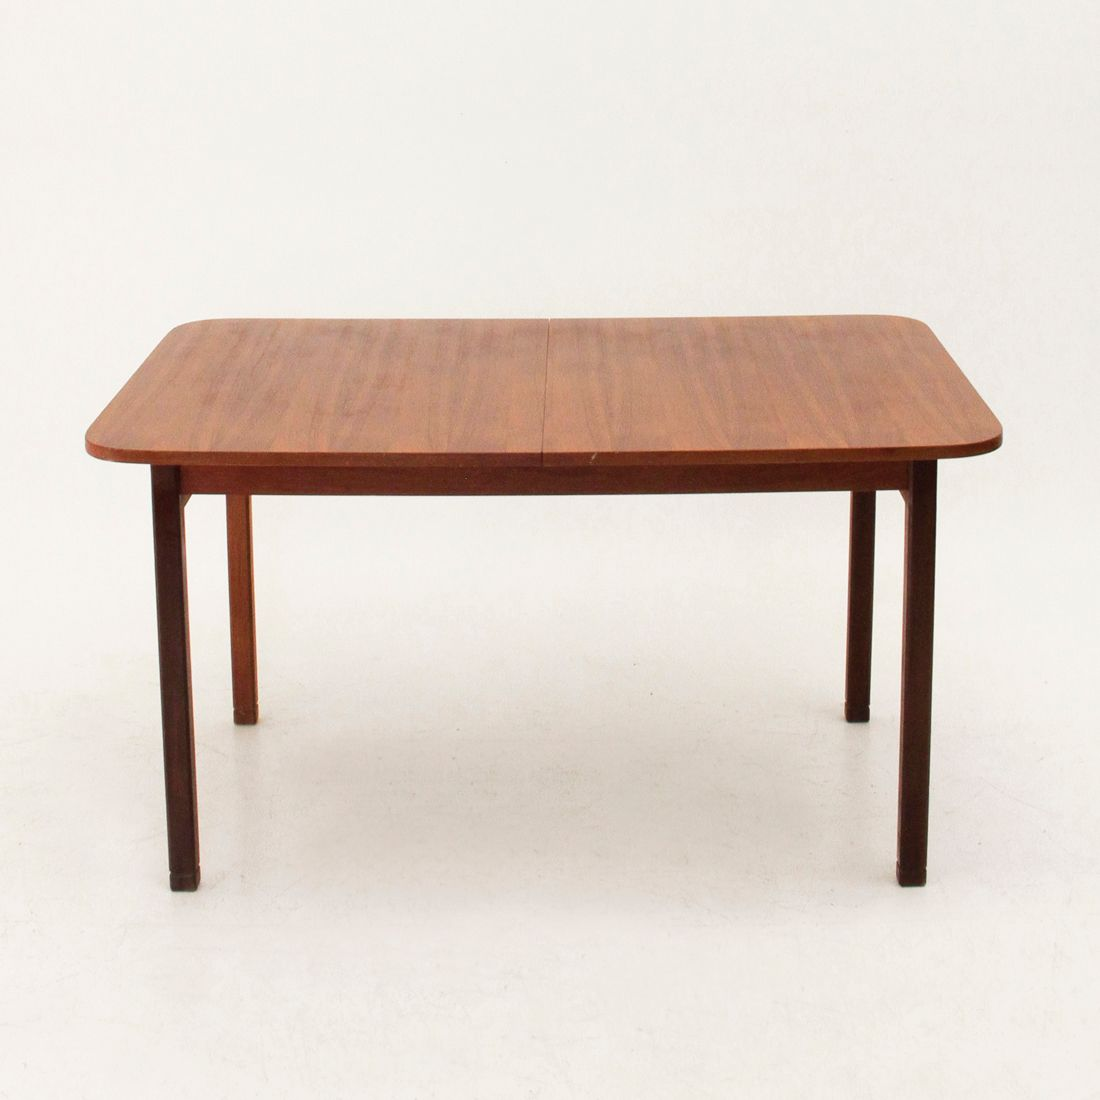 Italian extensible dining table 1960s for sale at pamono for Table ilot extensible